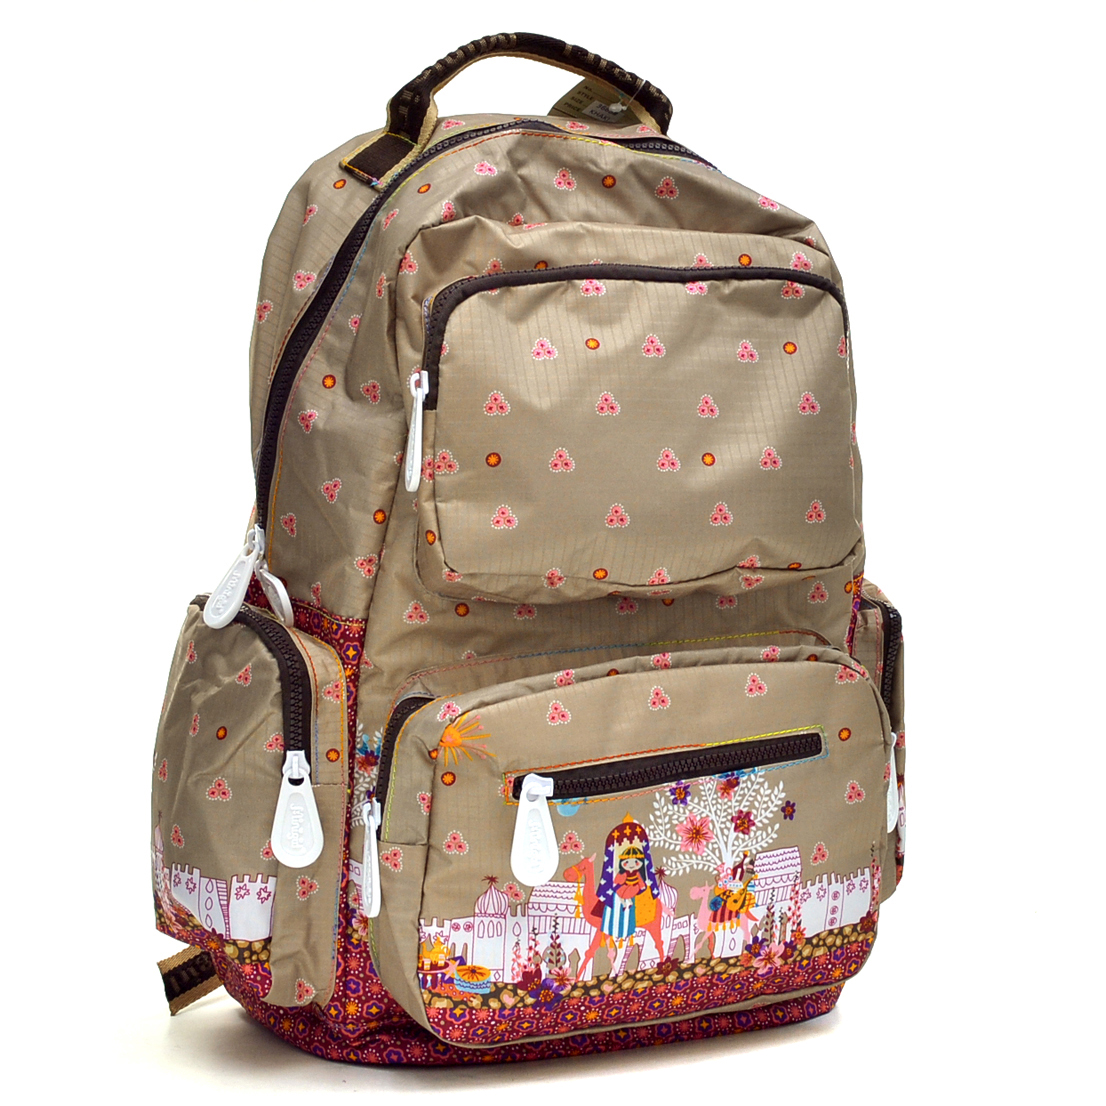 Nylon Fun Prints Backpack with Zipper Pockets